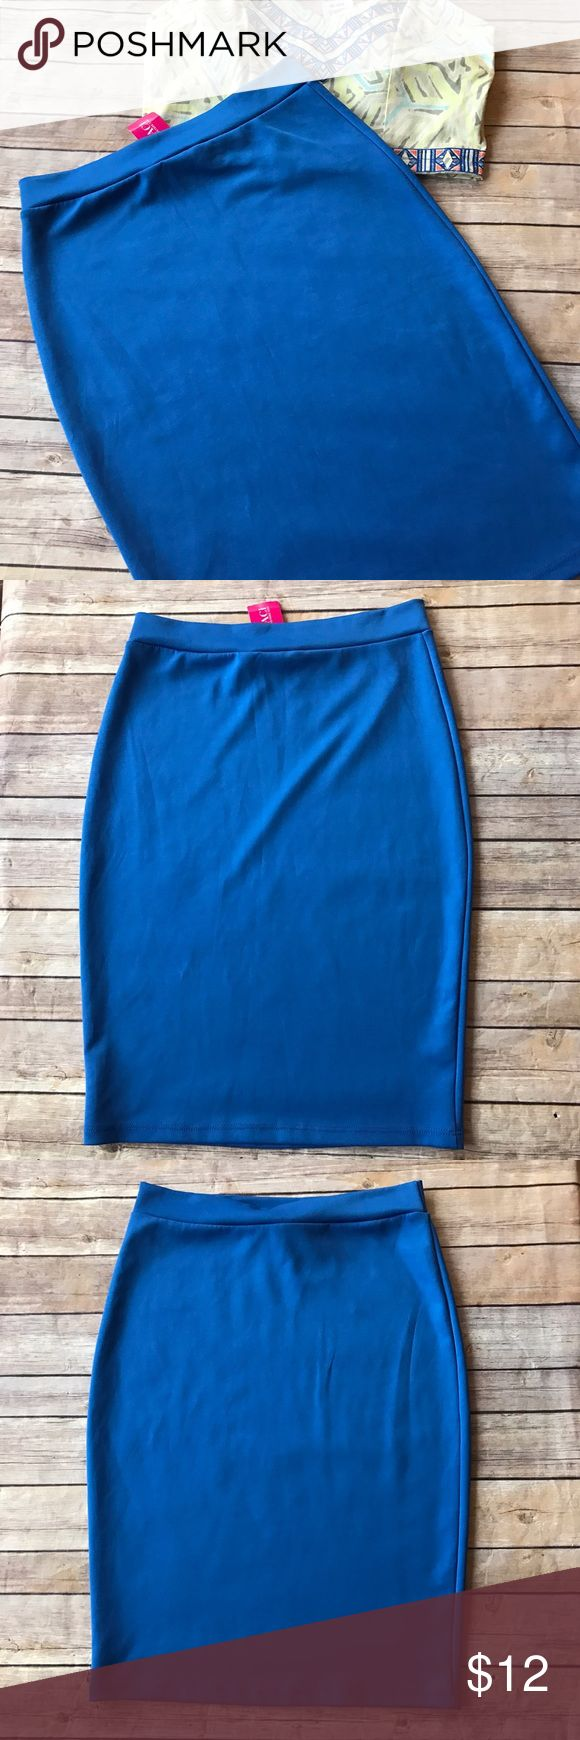 Sexy Blue Pencil Skirt!!! Blue pencil skirt with stretchy waist. Looks great with a crop top! Matching top in cover photo is listed for sale as well and would make a great bundle! 😉 a'gaci Skirts Pencil